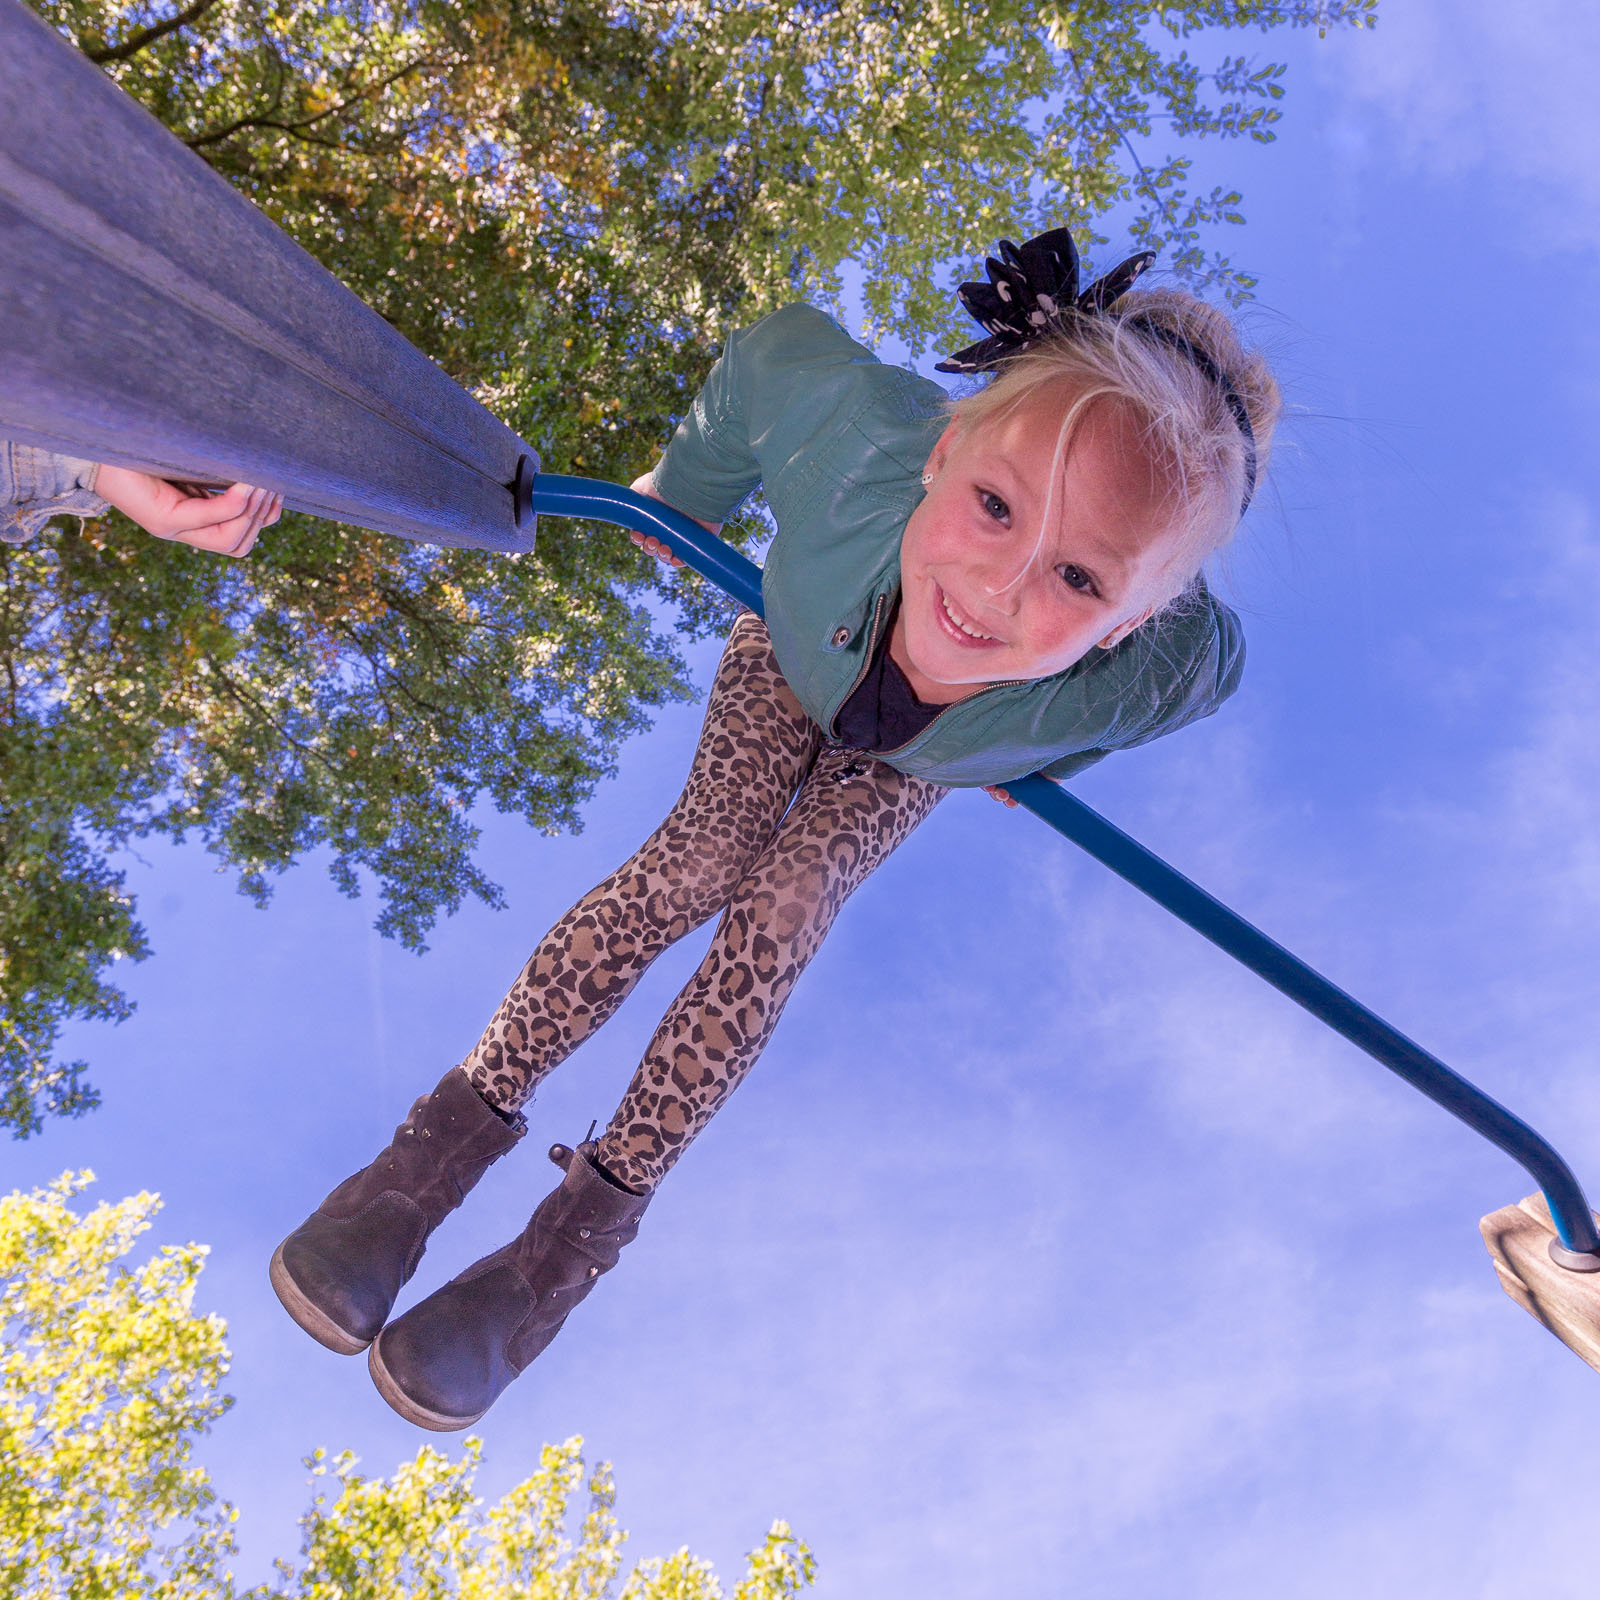 Young girl playing in a playground on a horizontal bar with frog perspective